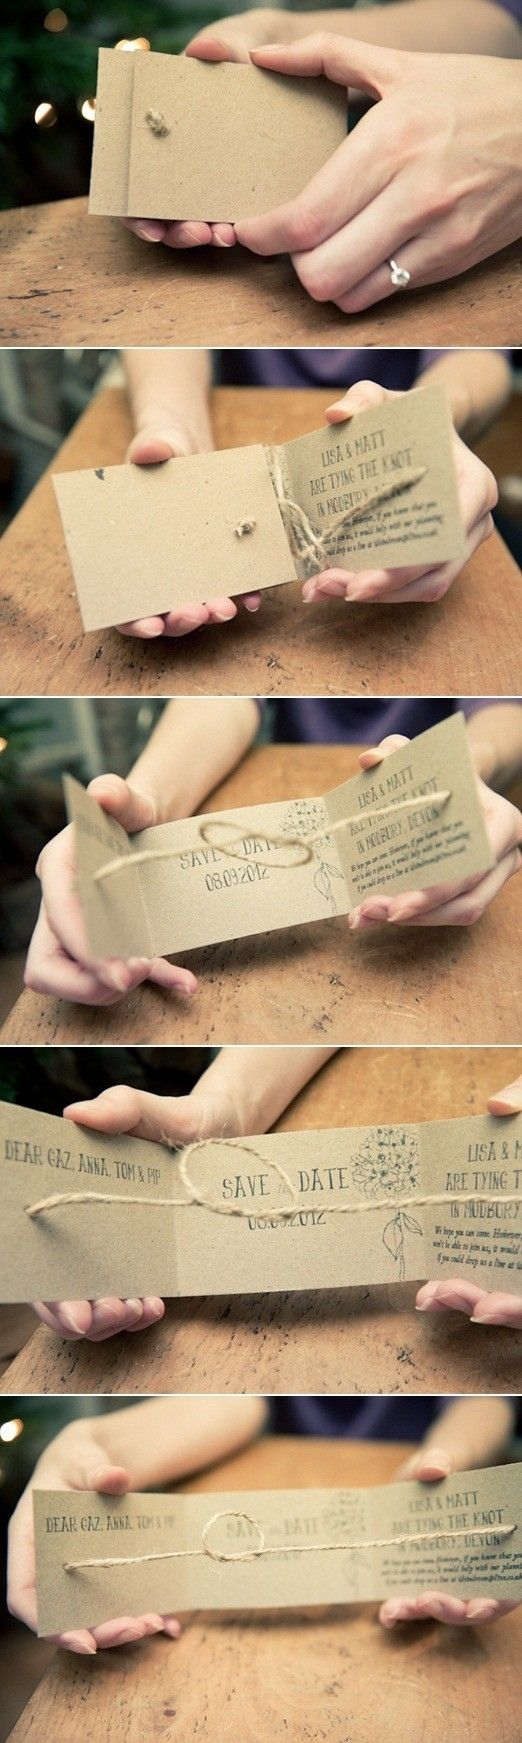 """save the date"" invites that tie the knot as you open them. very cute."